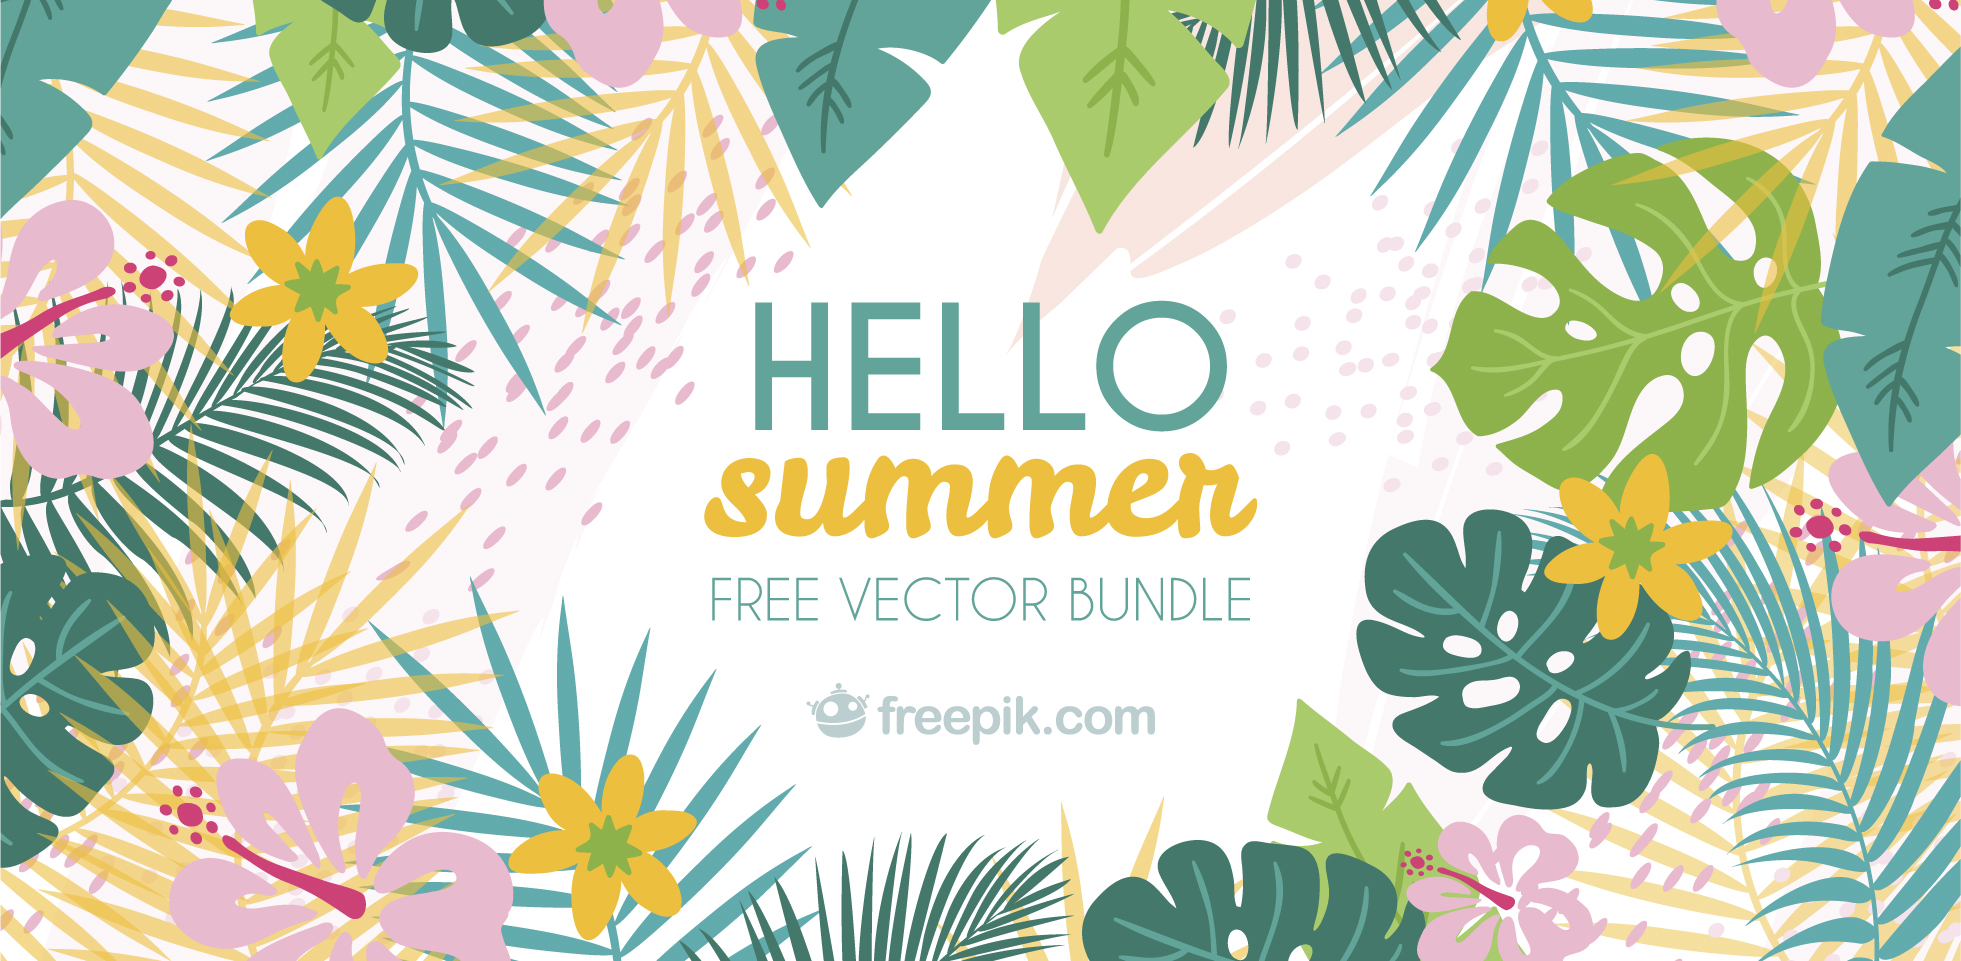 Free Download: Summer Mix Vector Bundle